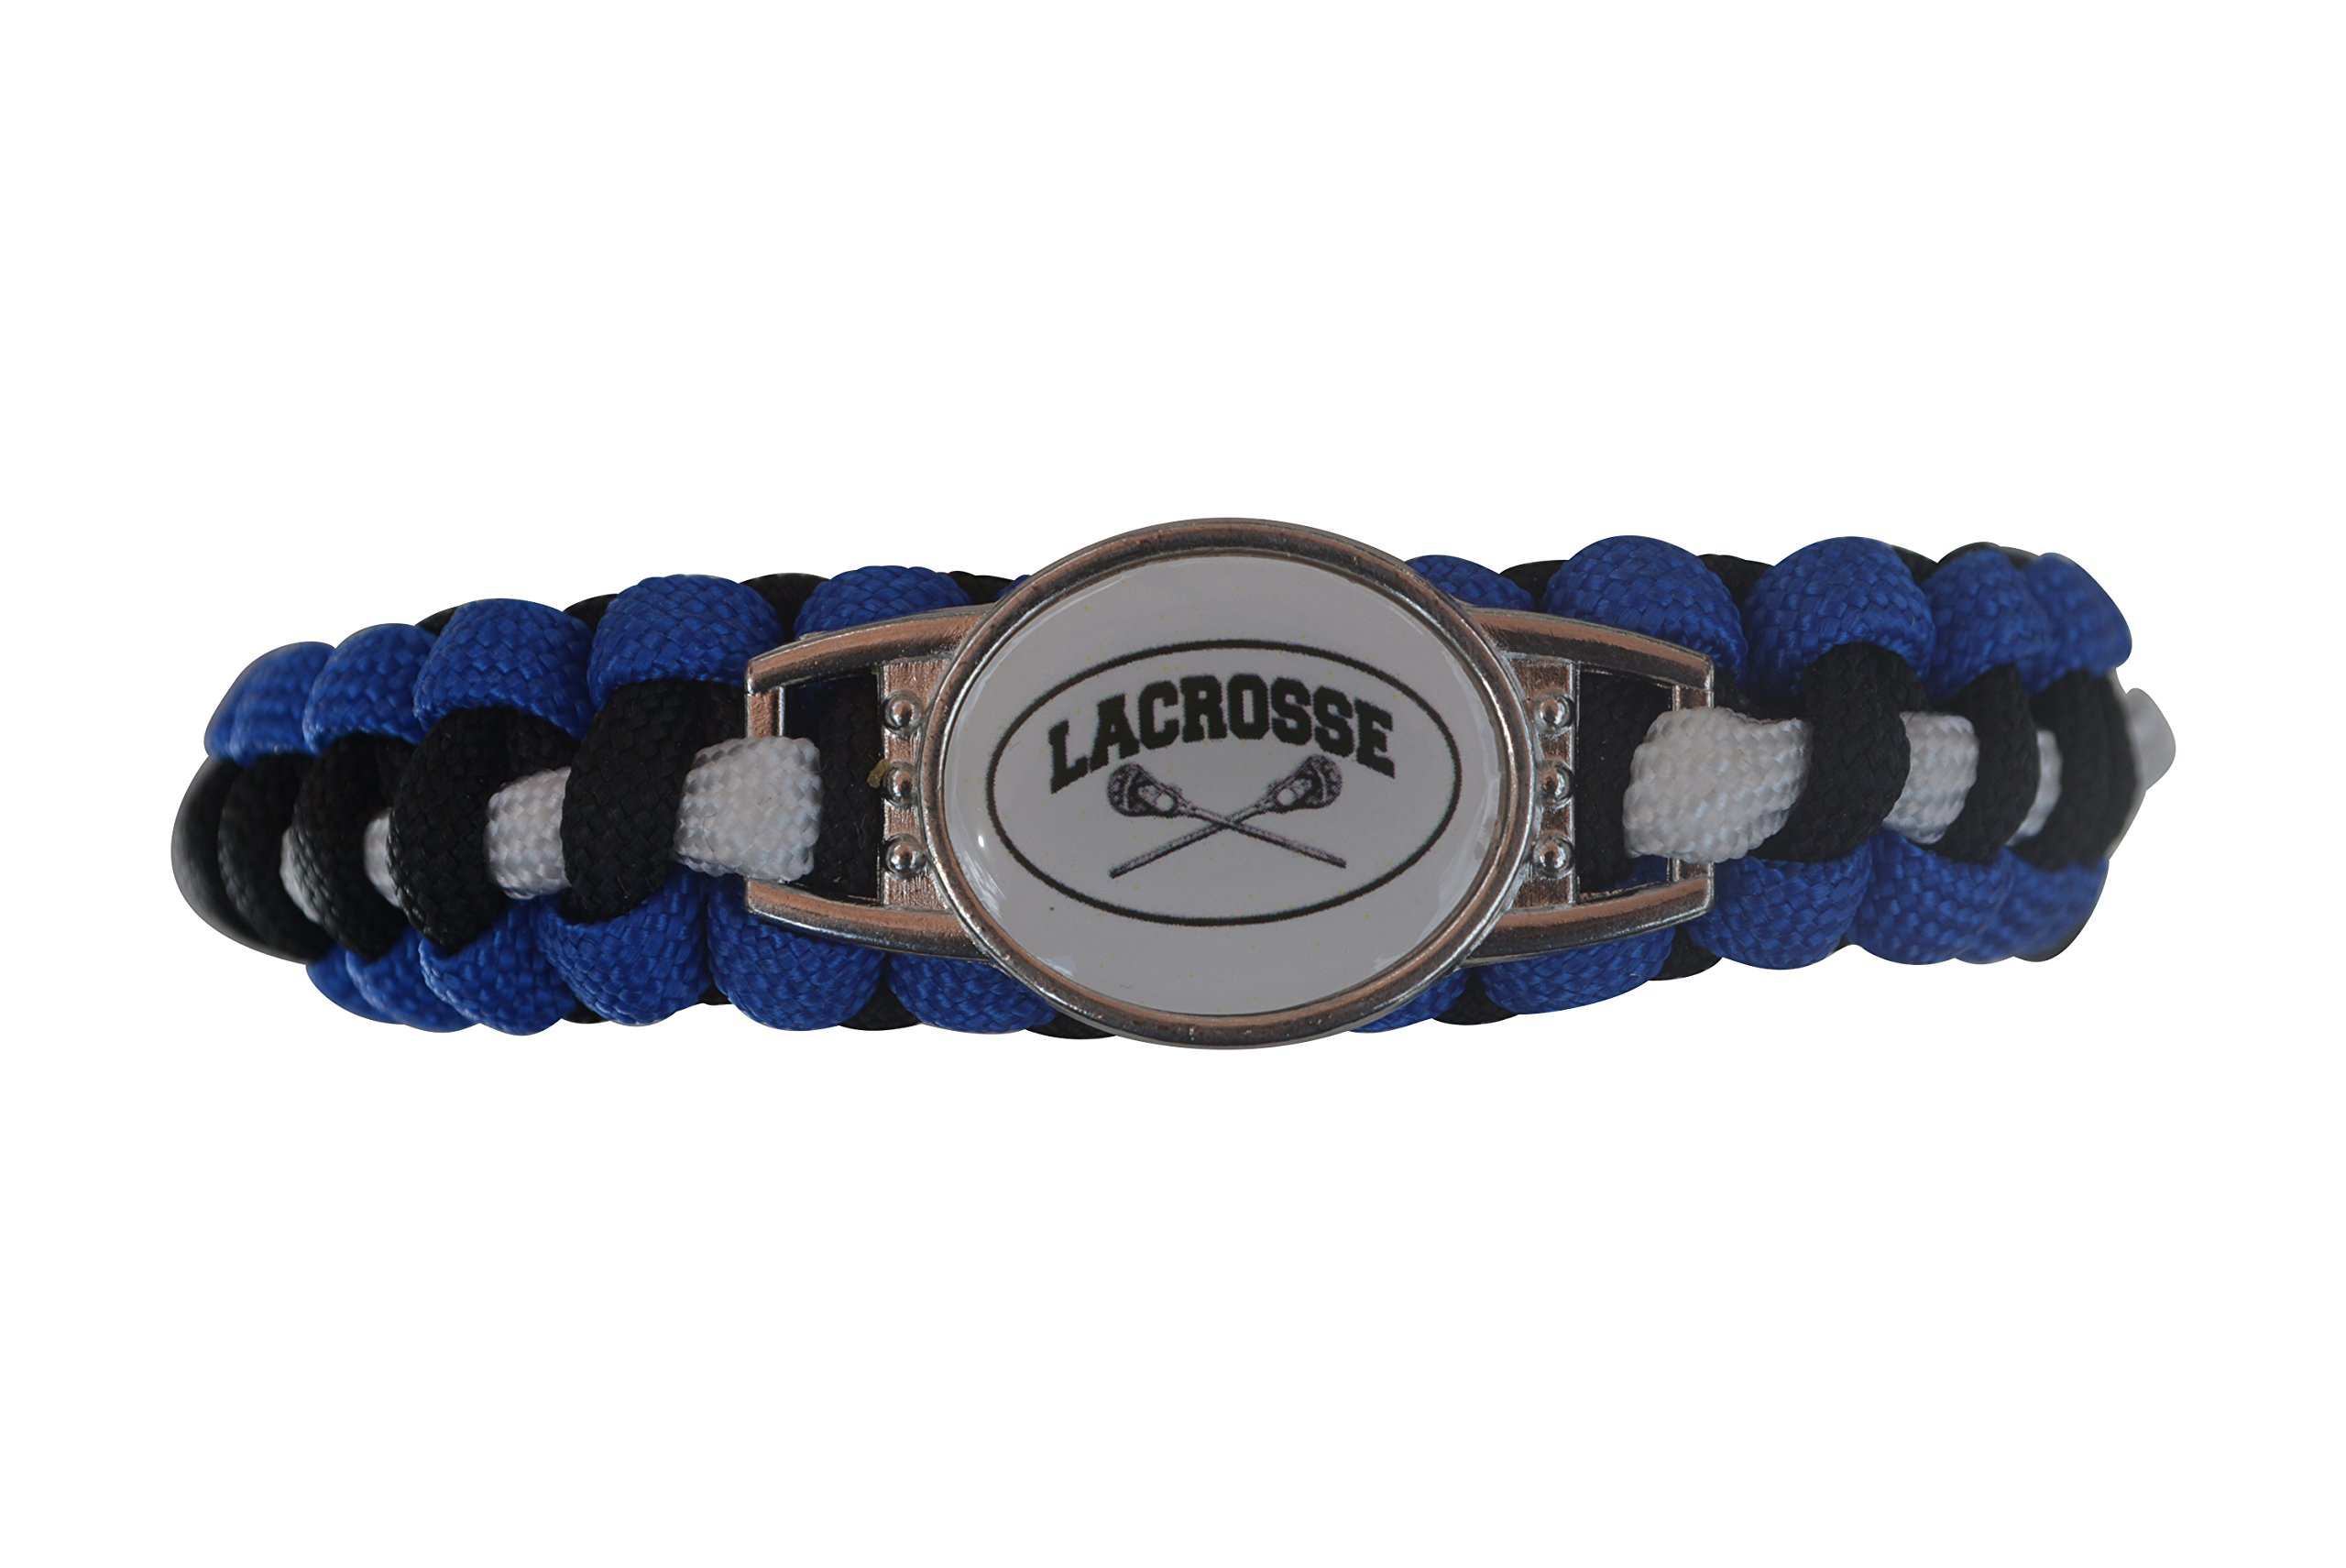 Infinity Collection Lacrosse Paracord Bracelet- Unisex Lacrosse Bracelet- Lacrosse Jewelry For Lacrosse Players